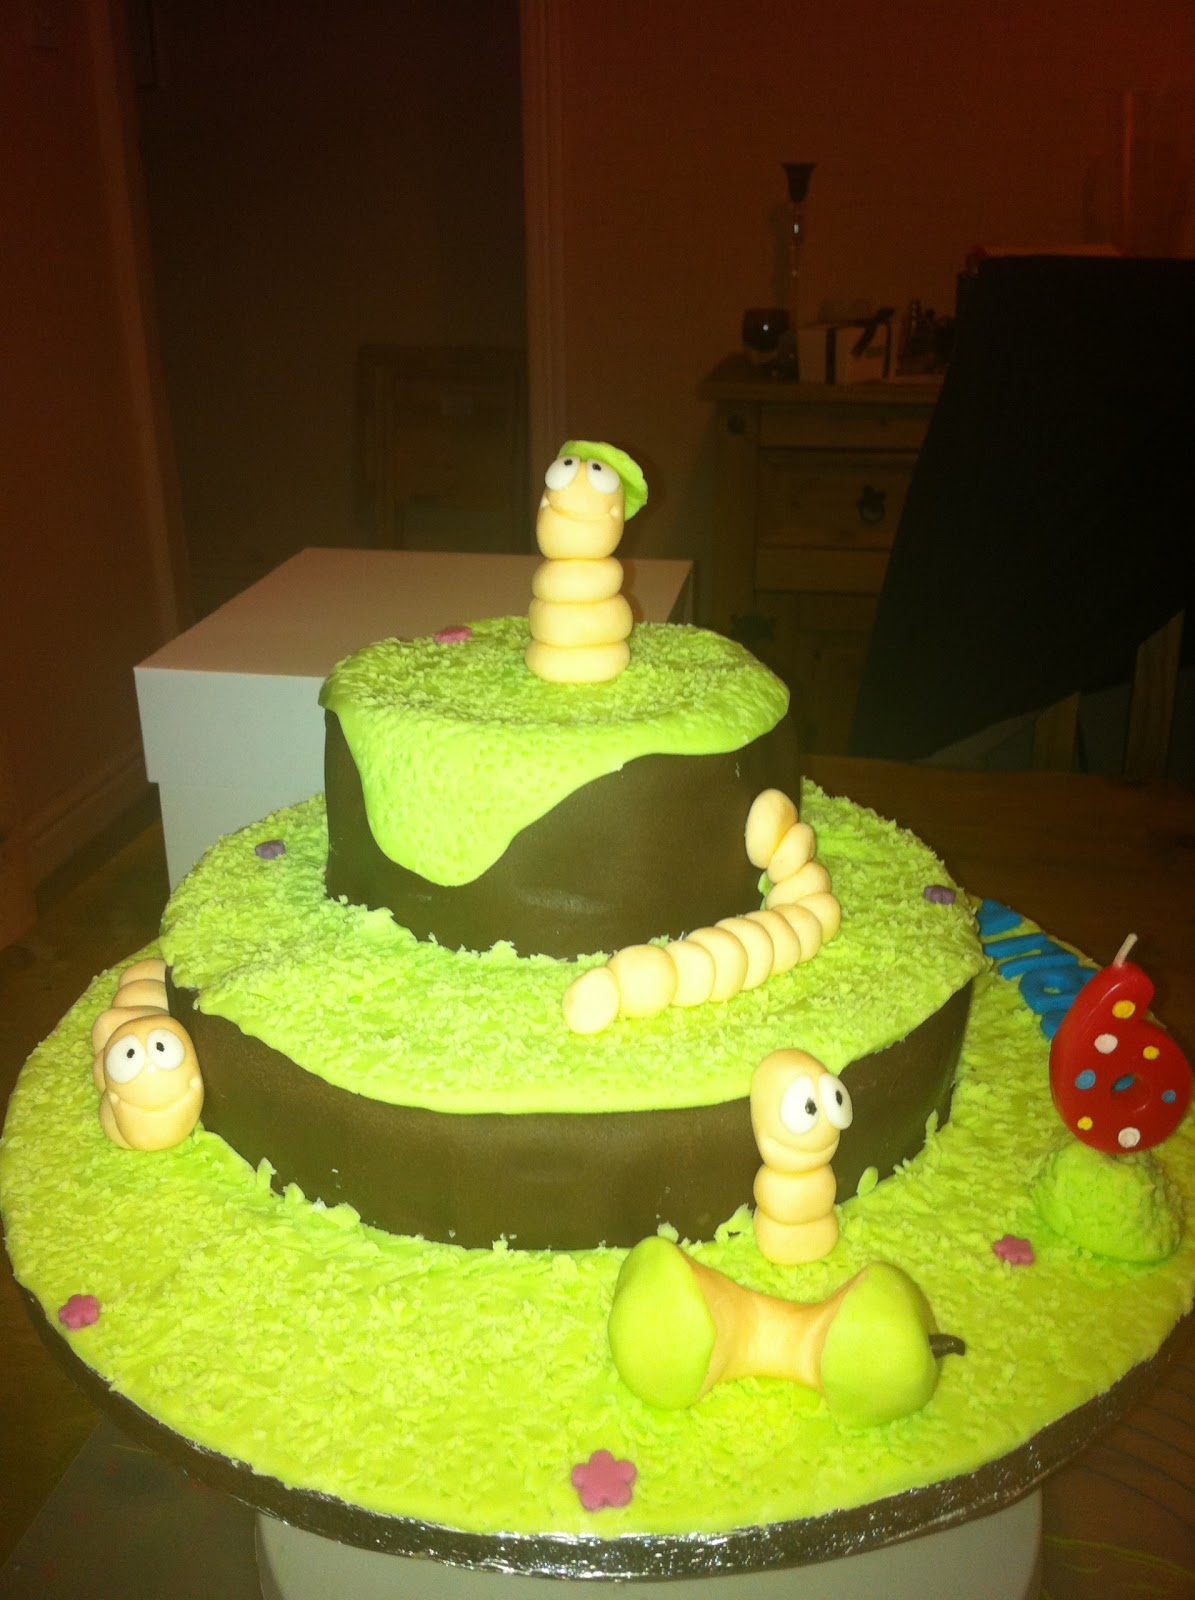 My Life In Cakes Wiggly Worm Cake